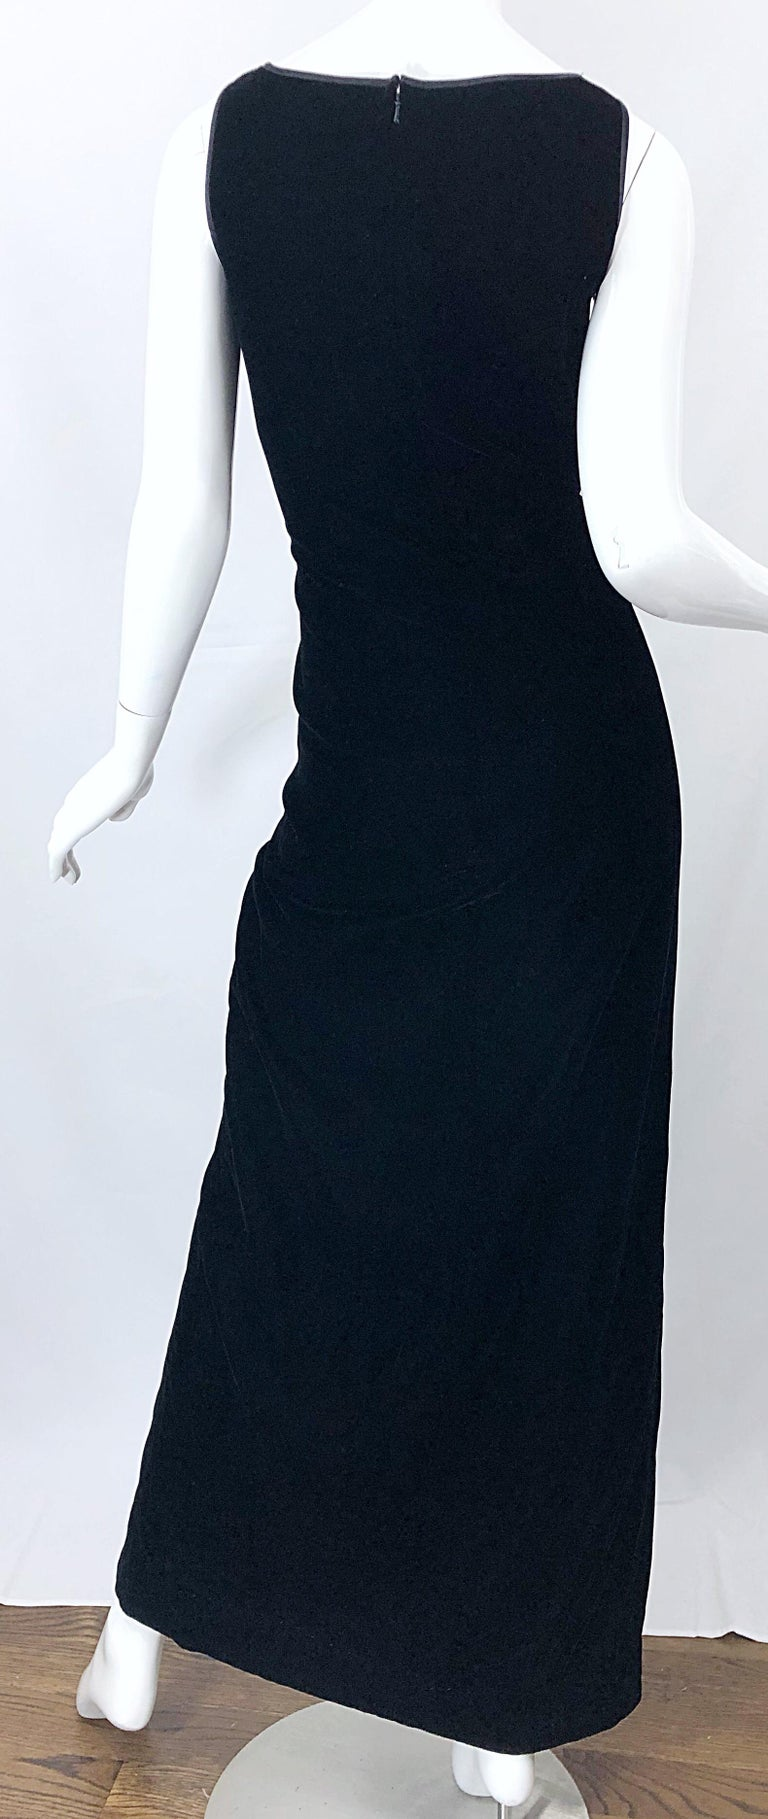 Vintage Bob Mackie Size 14 Black Velvet 1990s Sleeveless Sweetheart 90s Gown For Sale 2